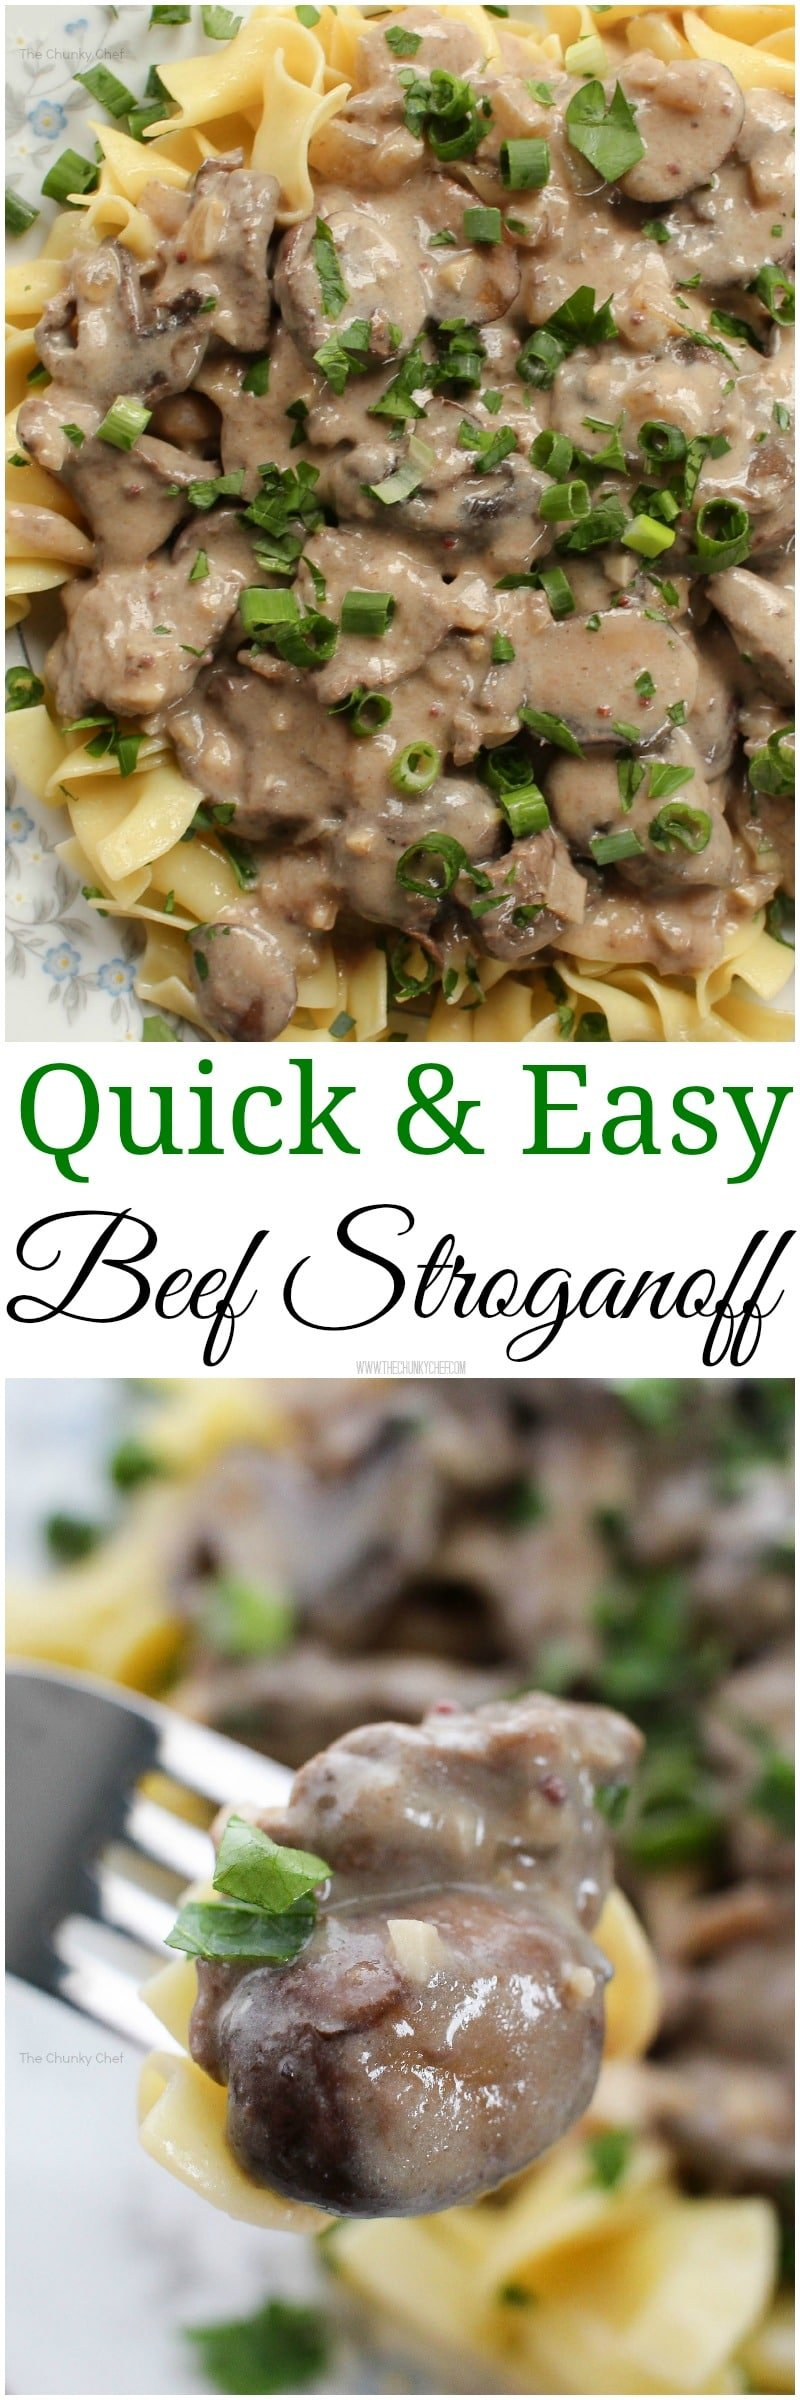 Quick and Easy Beef Stroganoff - Creamy and deeply flavorful, whip up a plate of this beef stroganoff tonight!  It's easy to make and guaranteed to make you want seconds!